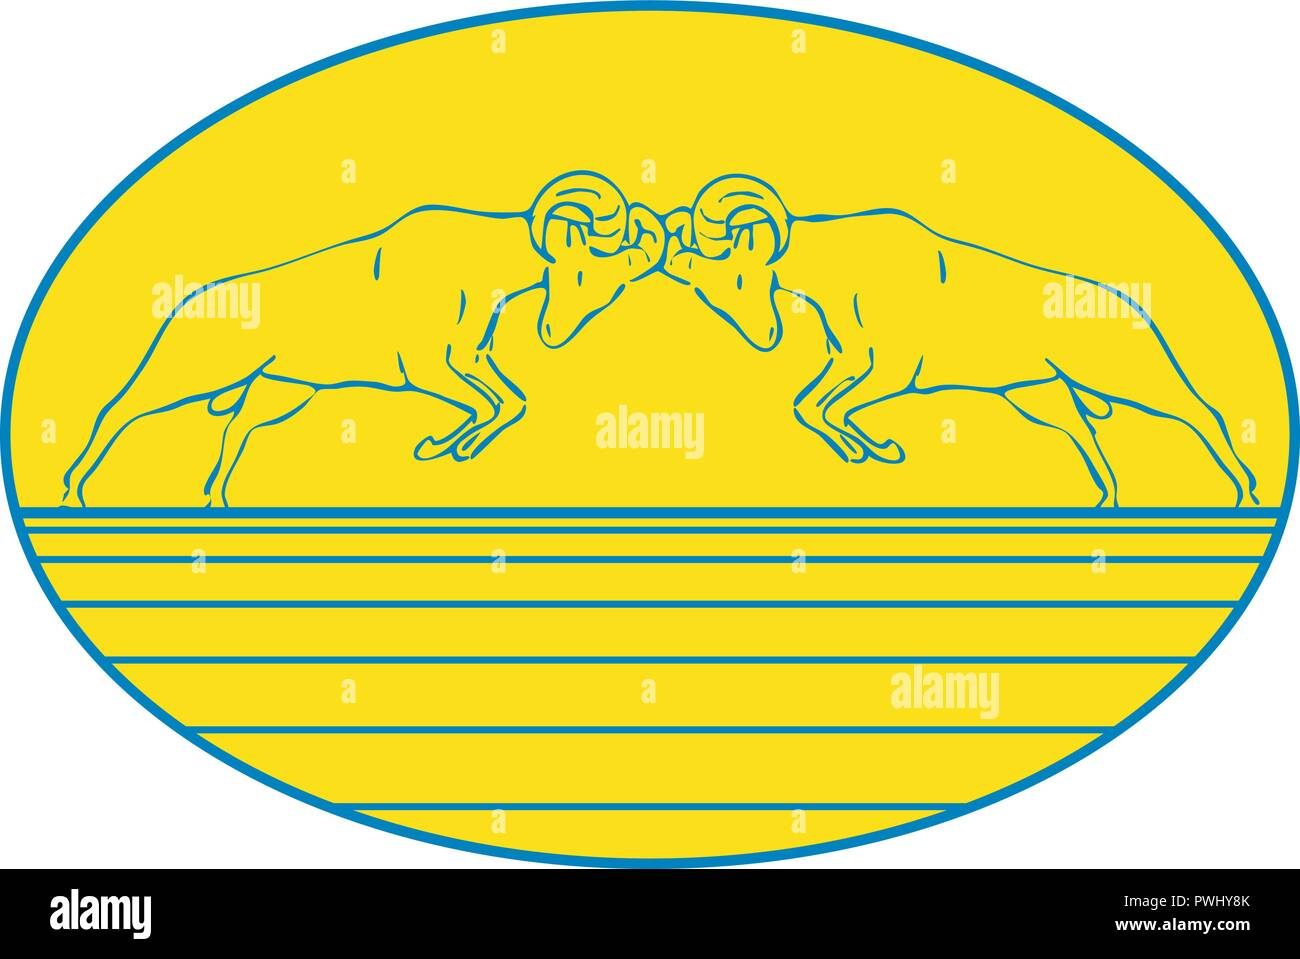 Drawing sketch style illustration of two bighorn sheep rams butting heads in a rut for dominance in mating season set inside oval on isolated white ba - Stock Vector